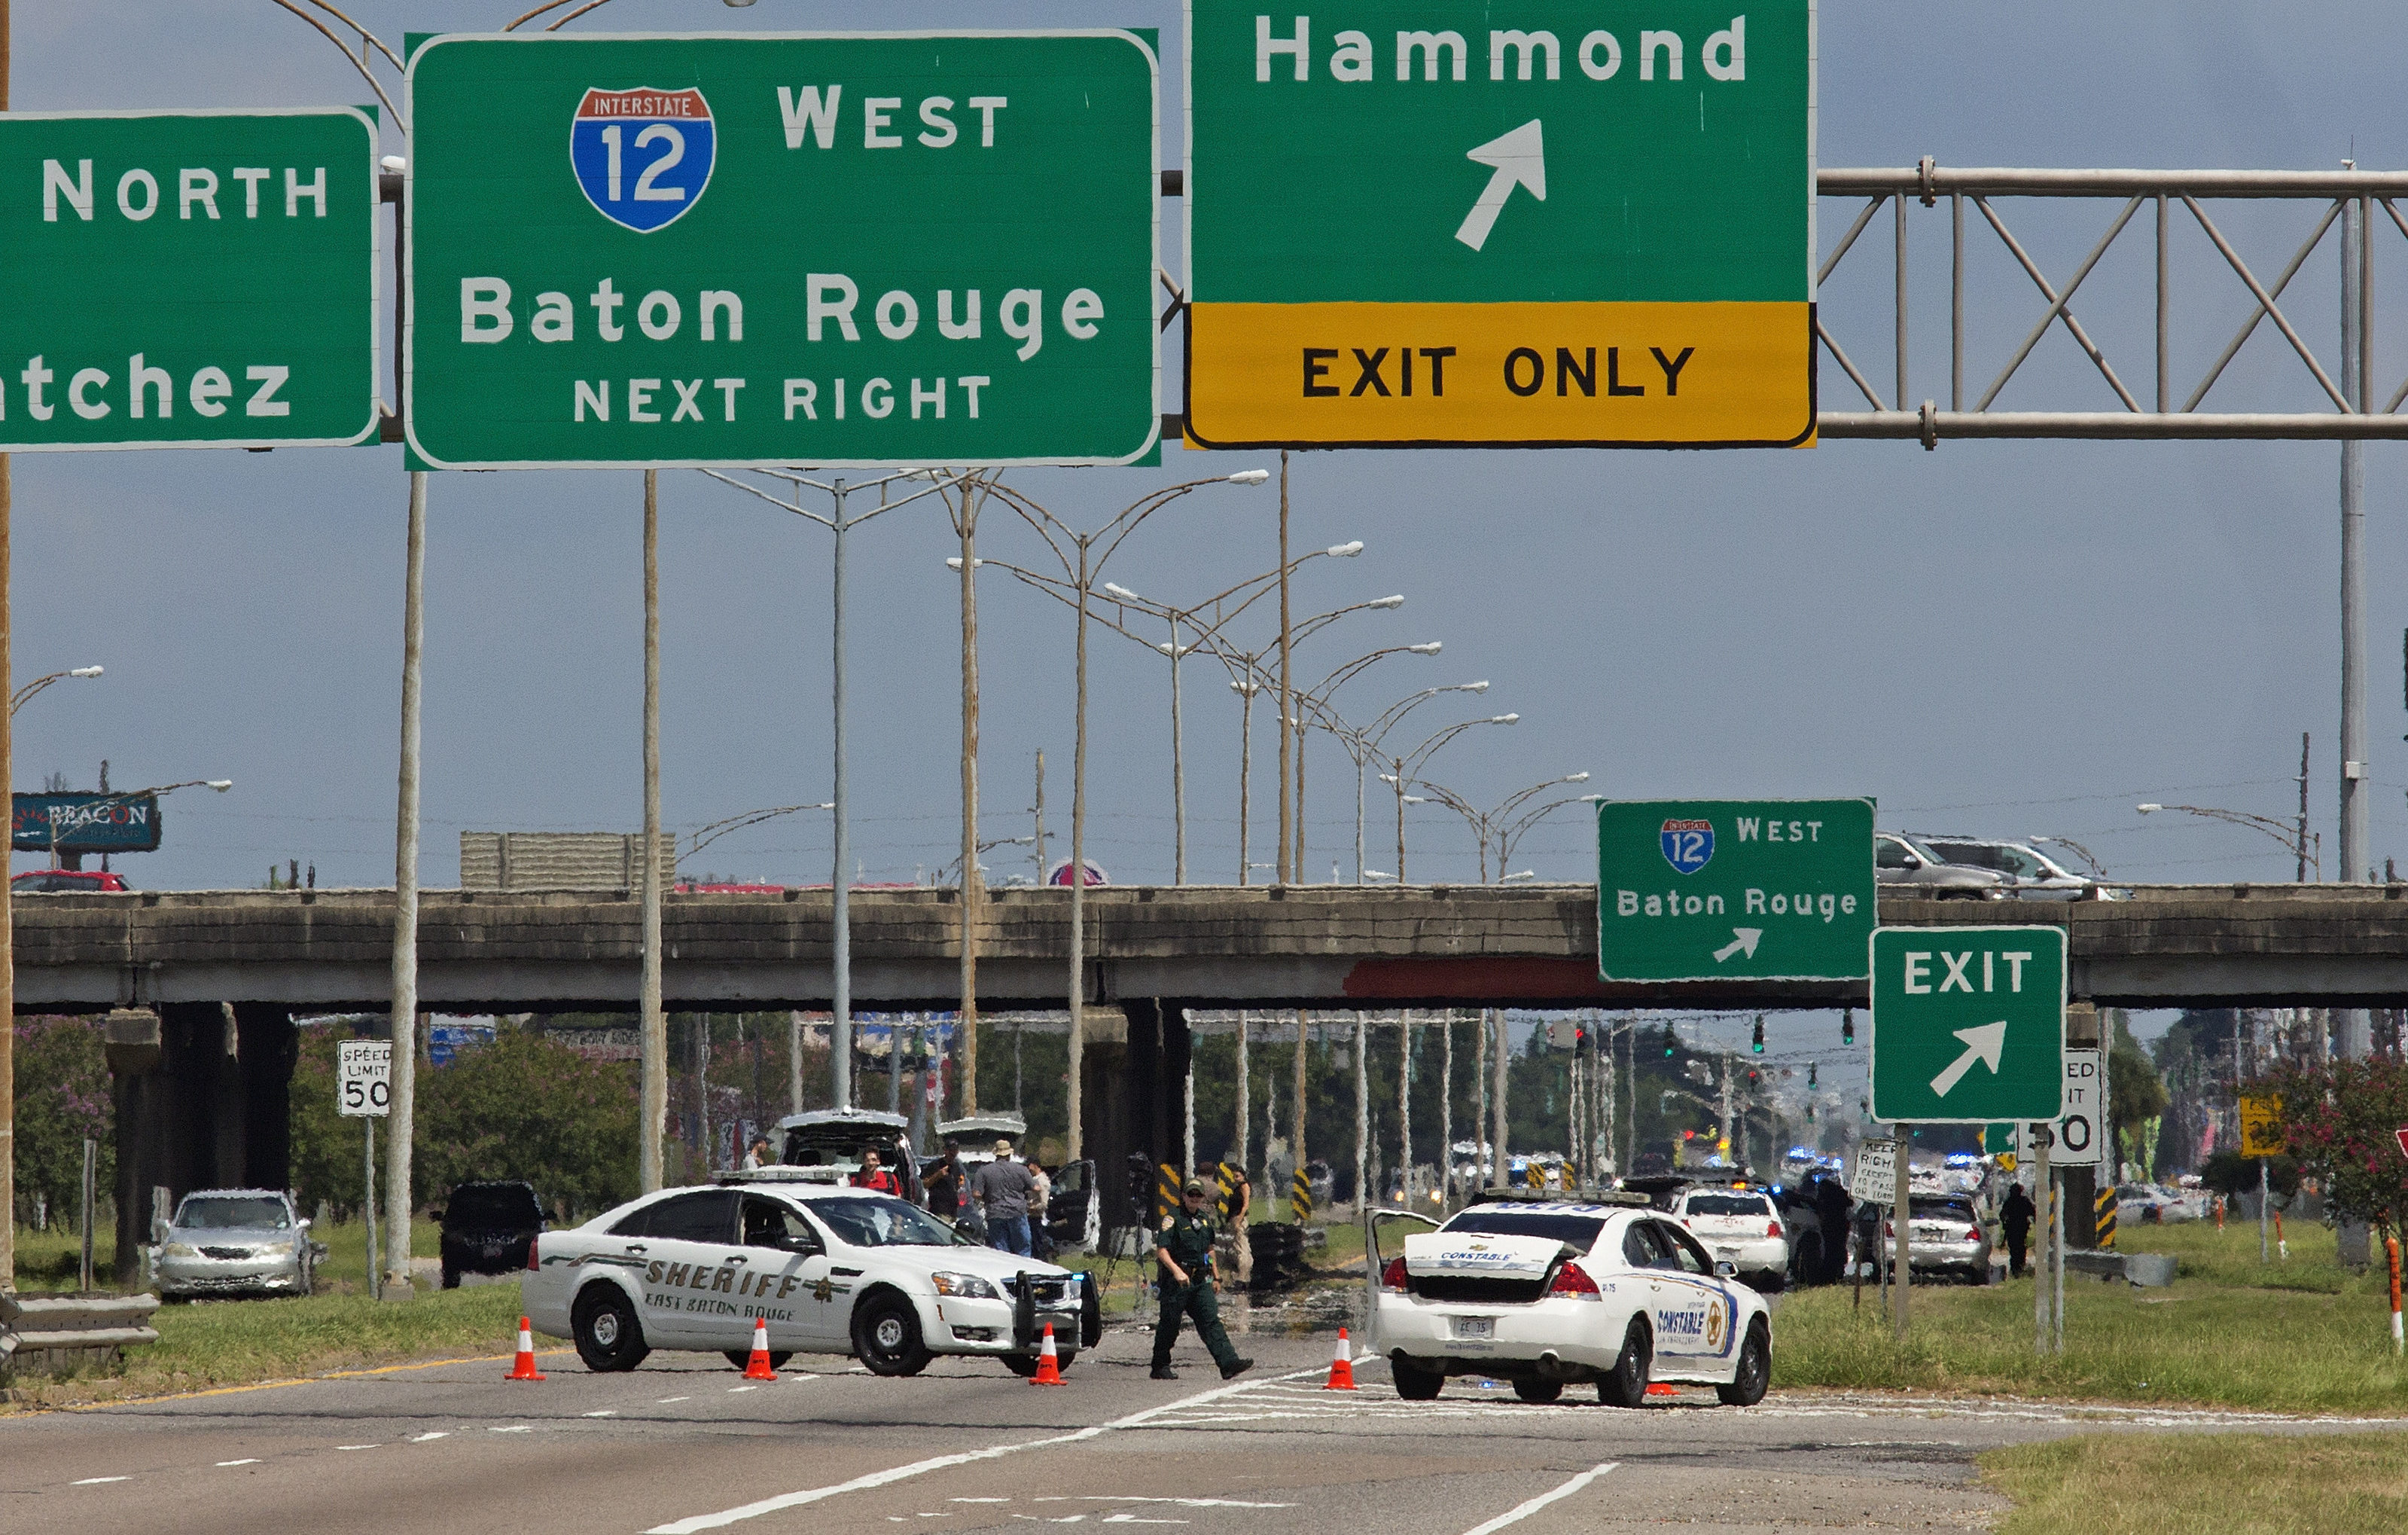 Baton Rouge police block Airline Highway after police were shot in Baton Rouge, La., Sunday, July 17, 2016. Authorities in Louisiana say several law enforcement officers are dead, and several injured in Baton Rouge after on-duty law enforcement officers were shot on Sunday morning. Max Becherer/AP